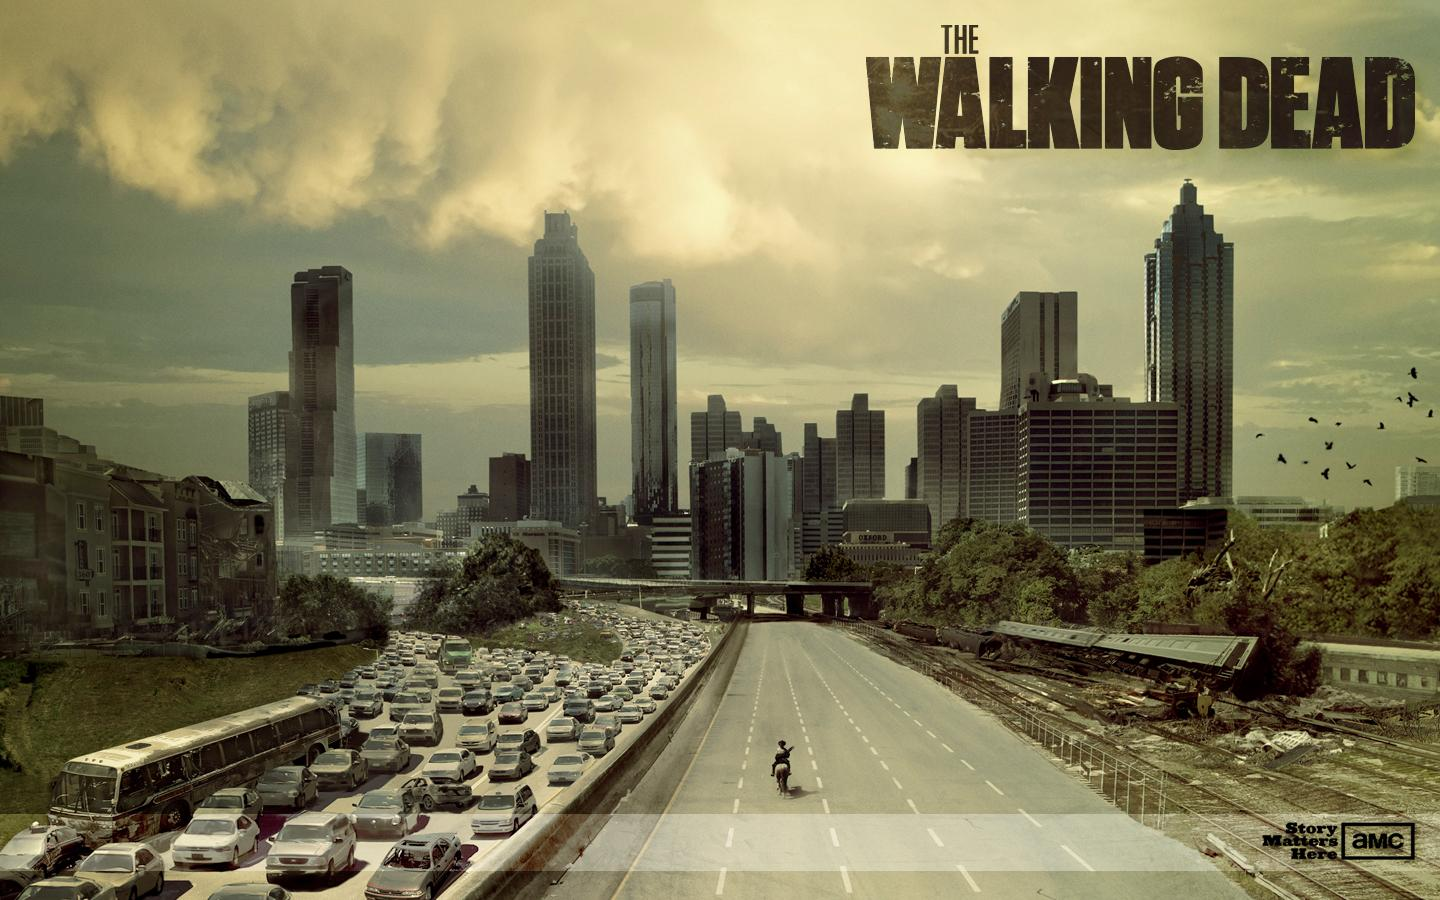 Walking Dead Wallpaper HD